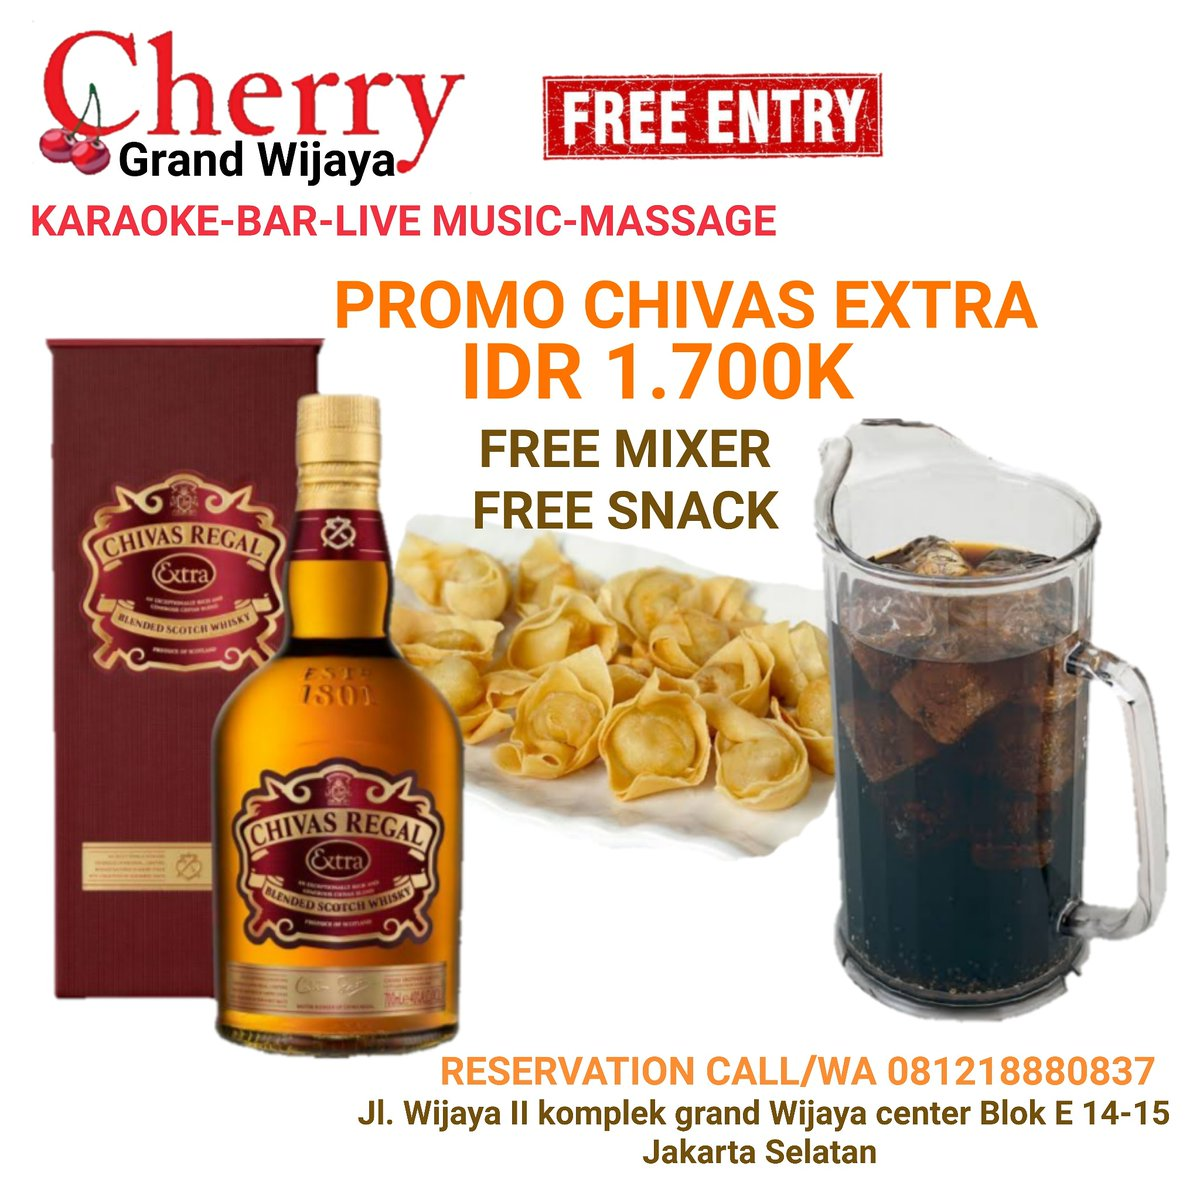 #KamisAmbyar #club #music #drink #ktv #nightlife #karaoke #sing #bar #lounge #livemusic #bintangbeer #massage #hangout #kopdar #kongkow #dance #dancefloor #topdj #Jakartanightlife #whiskey #vodca #cognag #vodcalovers #wine #party #event #celebrations